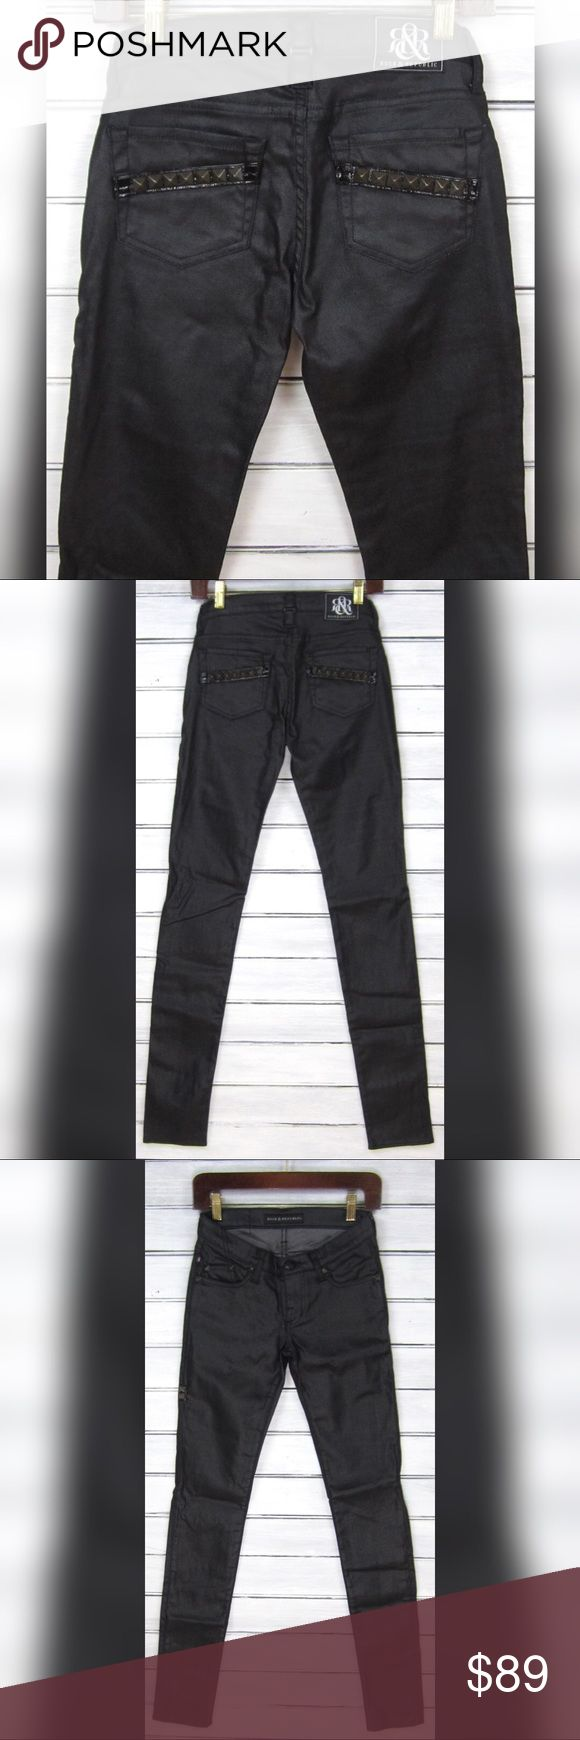 """Rock & Republic Black Coated Studded Skinny Jeans Ladies Rock & Republic PREMIUM (original collection!) black wax coated skinny jeans! Features a low 7"""" rise and awesome pyramid studded accents on the back pockets. SAMPLE-never mass produced! Classic zipper/button closure, denim has a nice amount of stretch though the material content isn't listed. Awesome waxy coated finish, made in the USA!   Tagged size 25, please refer to all measurements to guarantee a perfect fit!   New without tags…"""